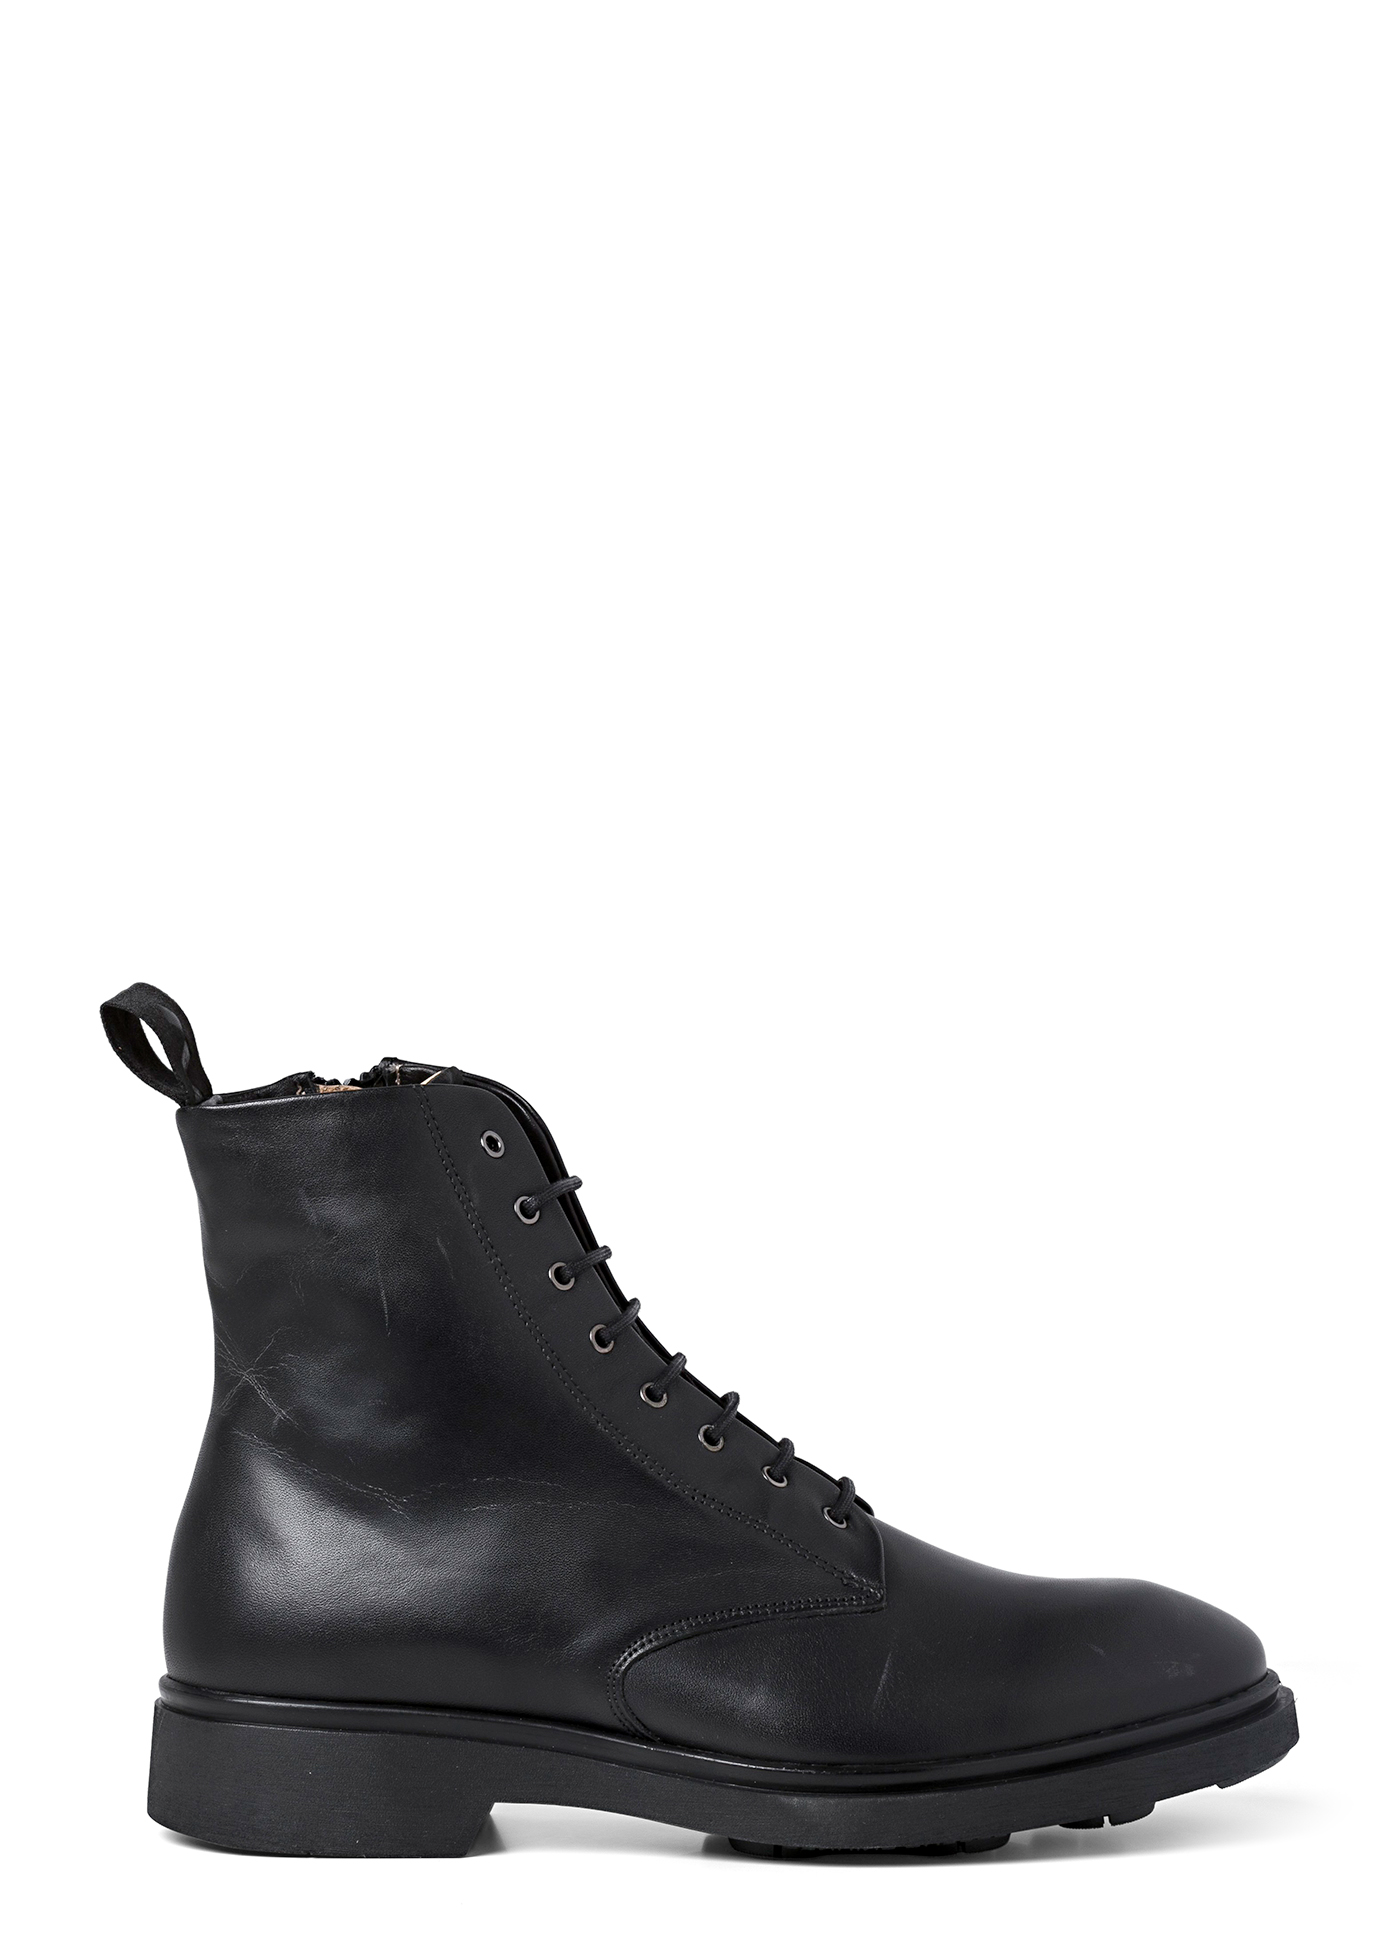 Defender Lace Up Boot 215 image number 0